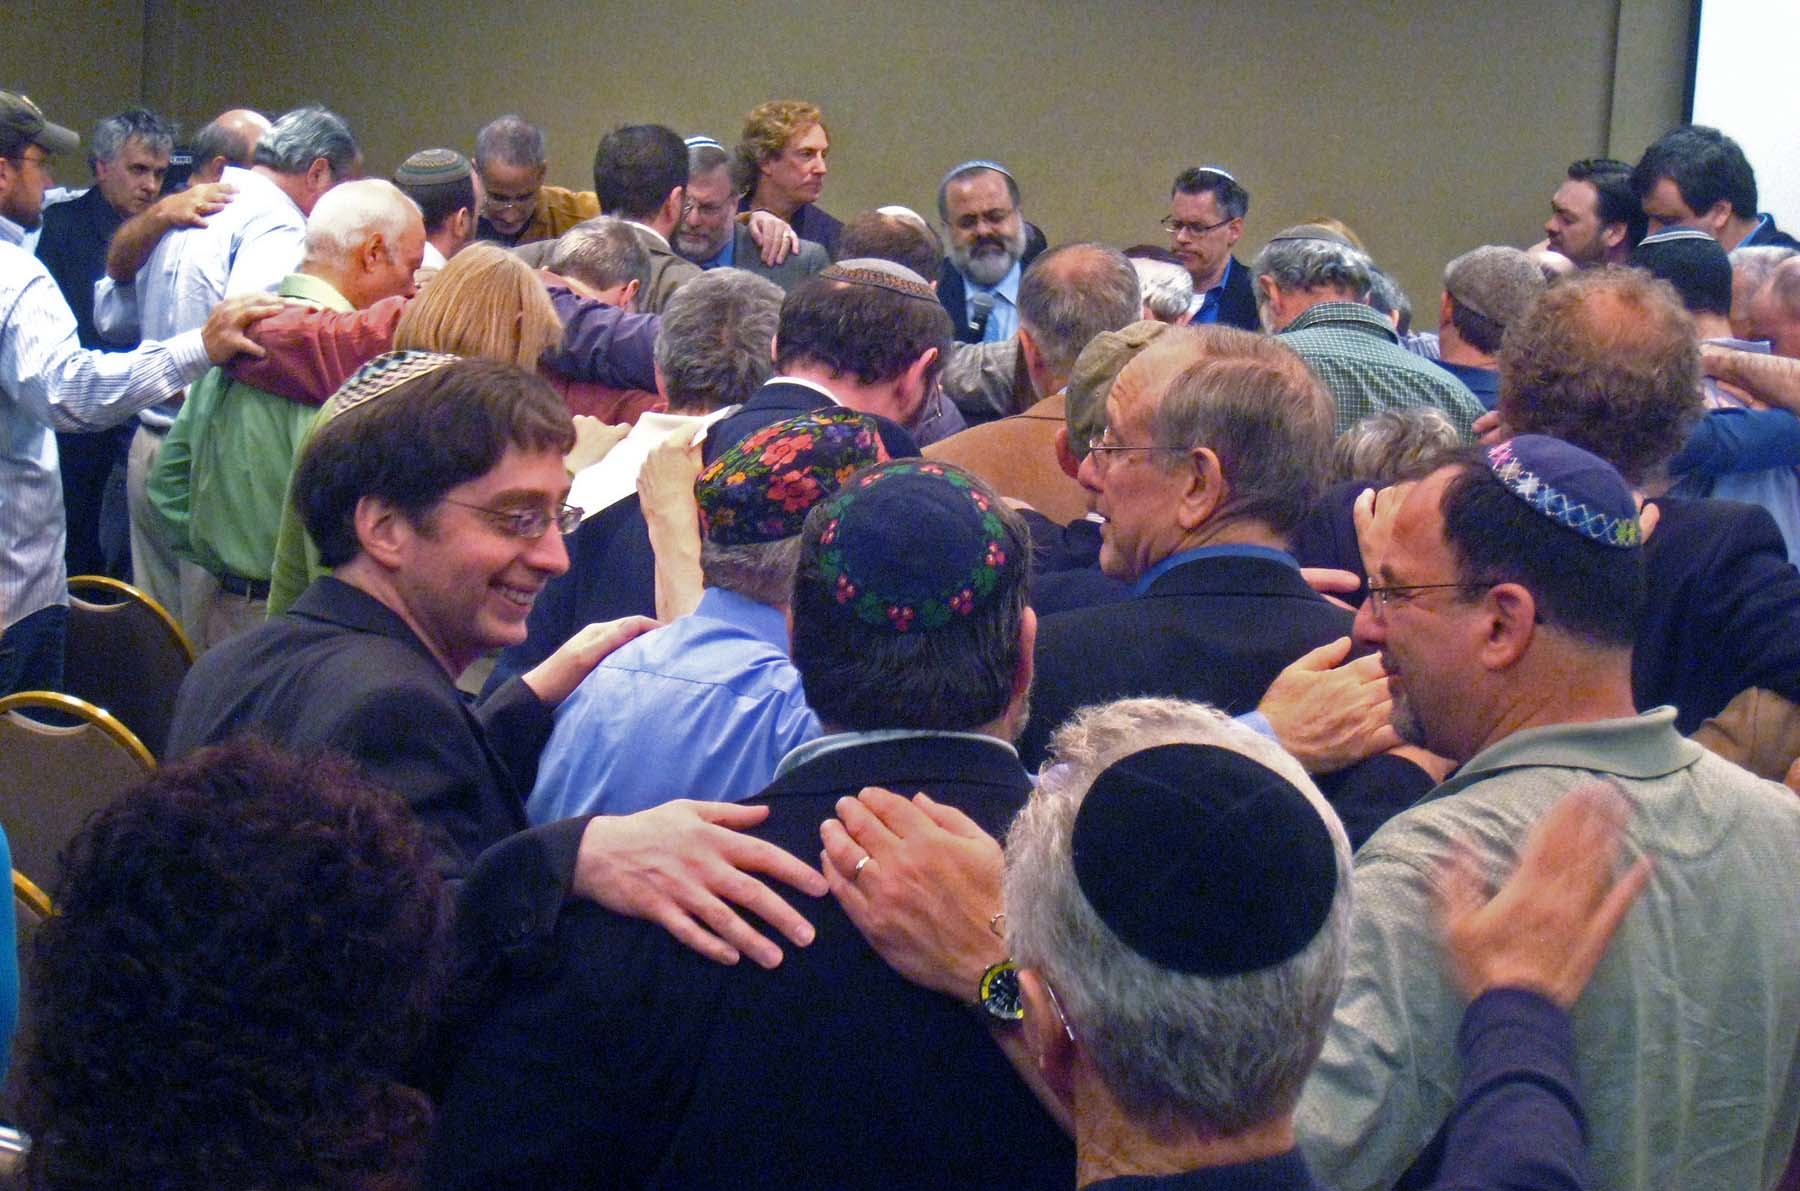 Messianic Jewish leaders gathered for prayer at Borough Park II conference this Spring.